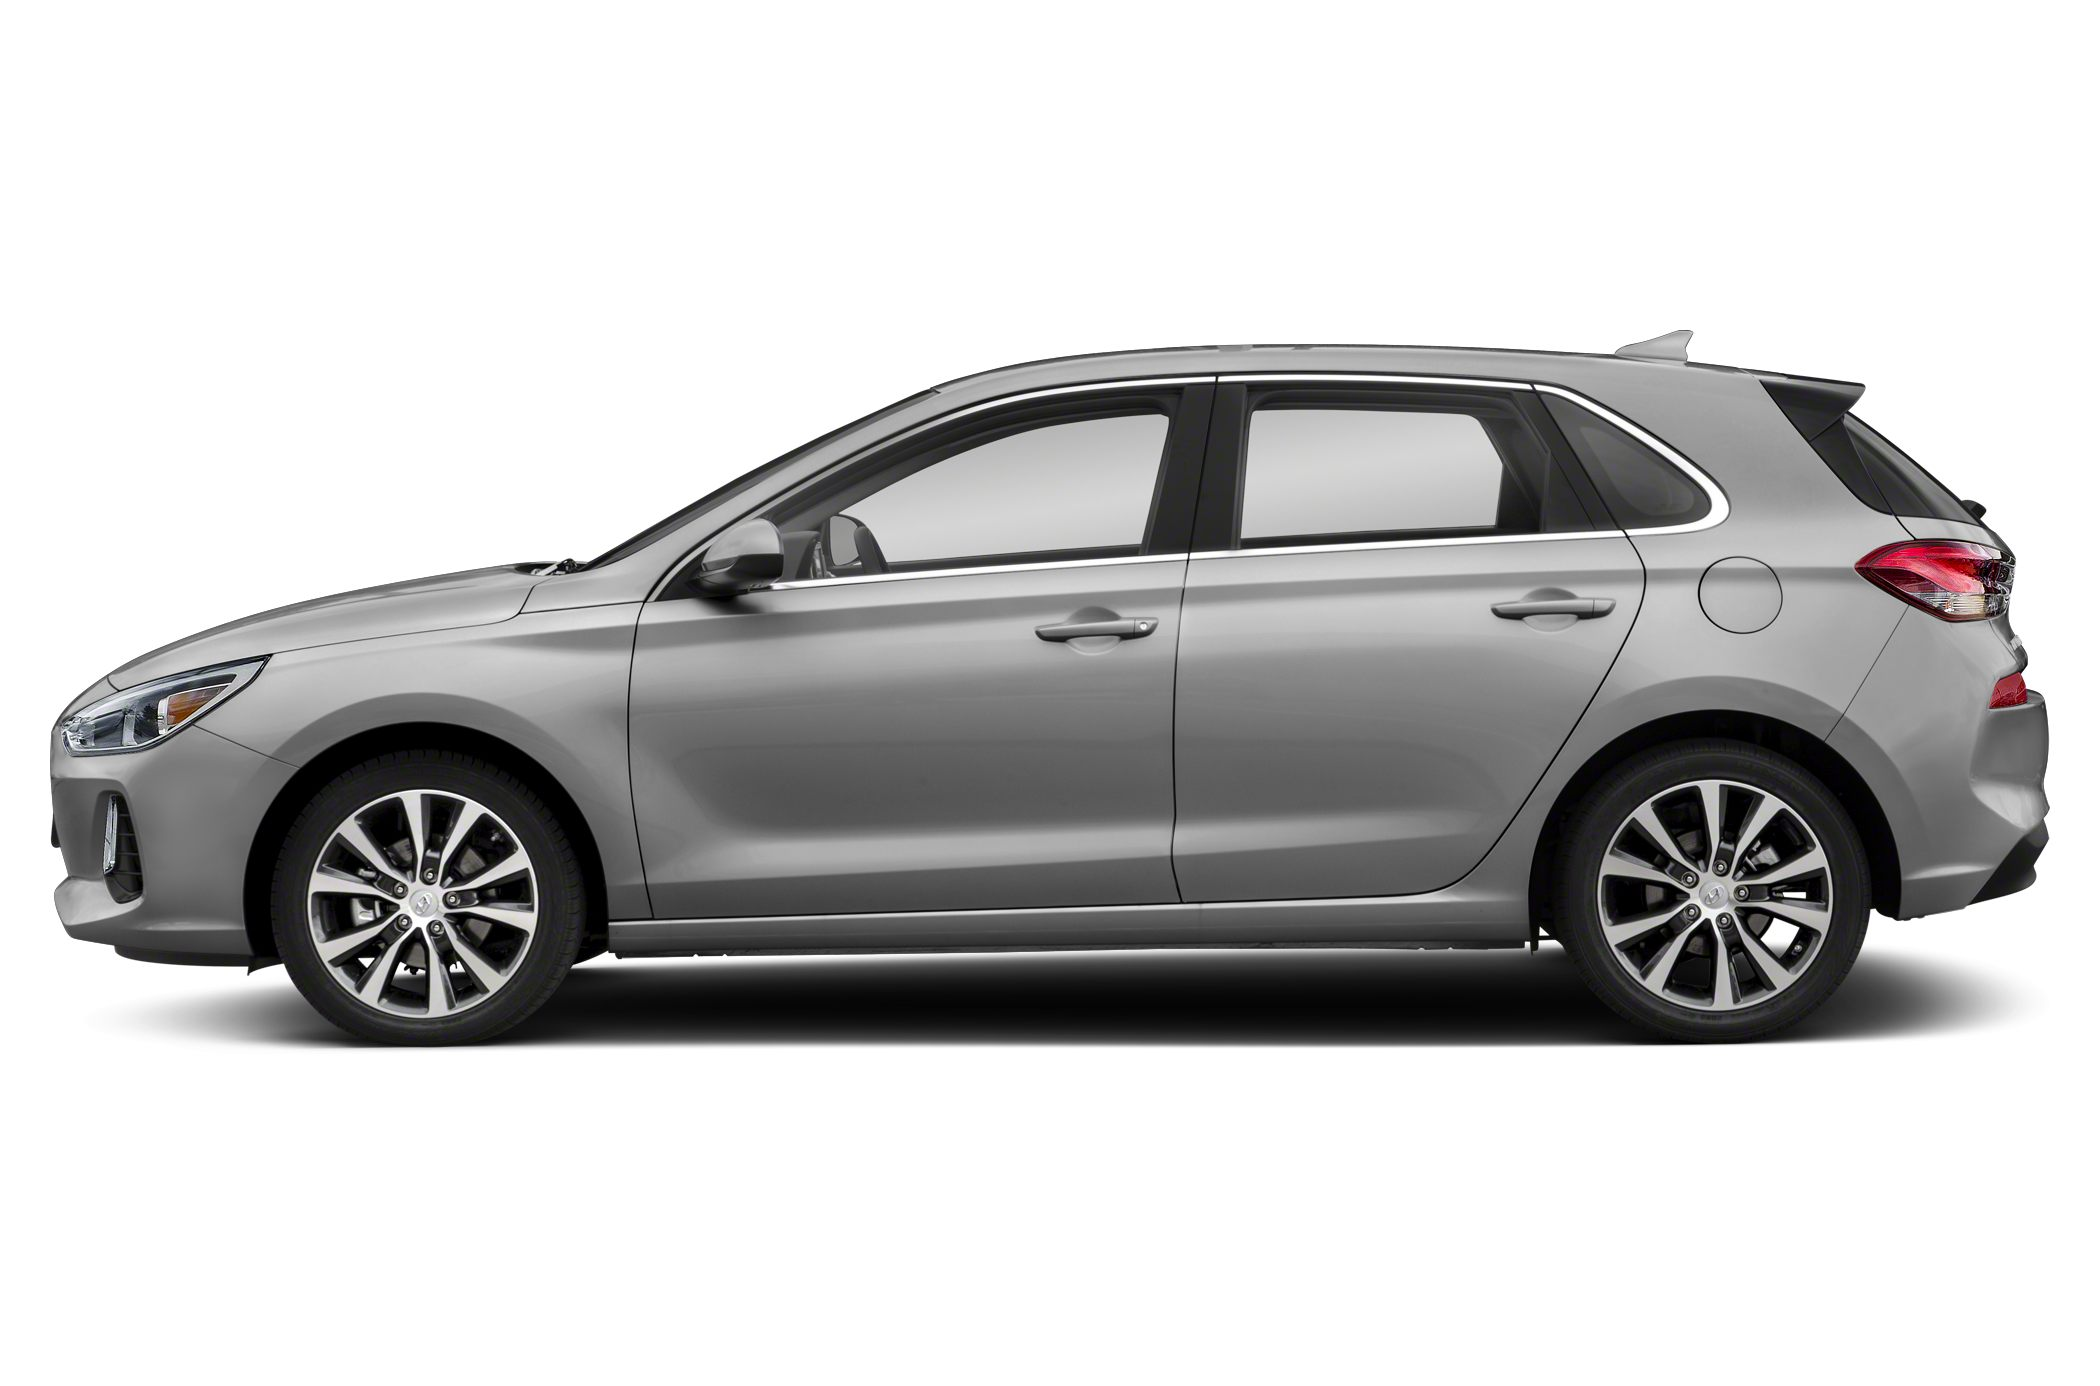 2019 Hyundai Elantra GT Deals, Prices, Incentives & Leases ...